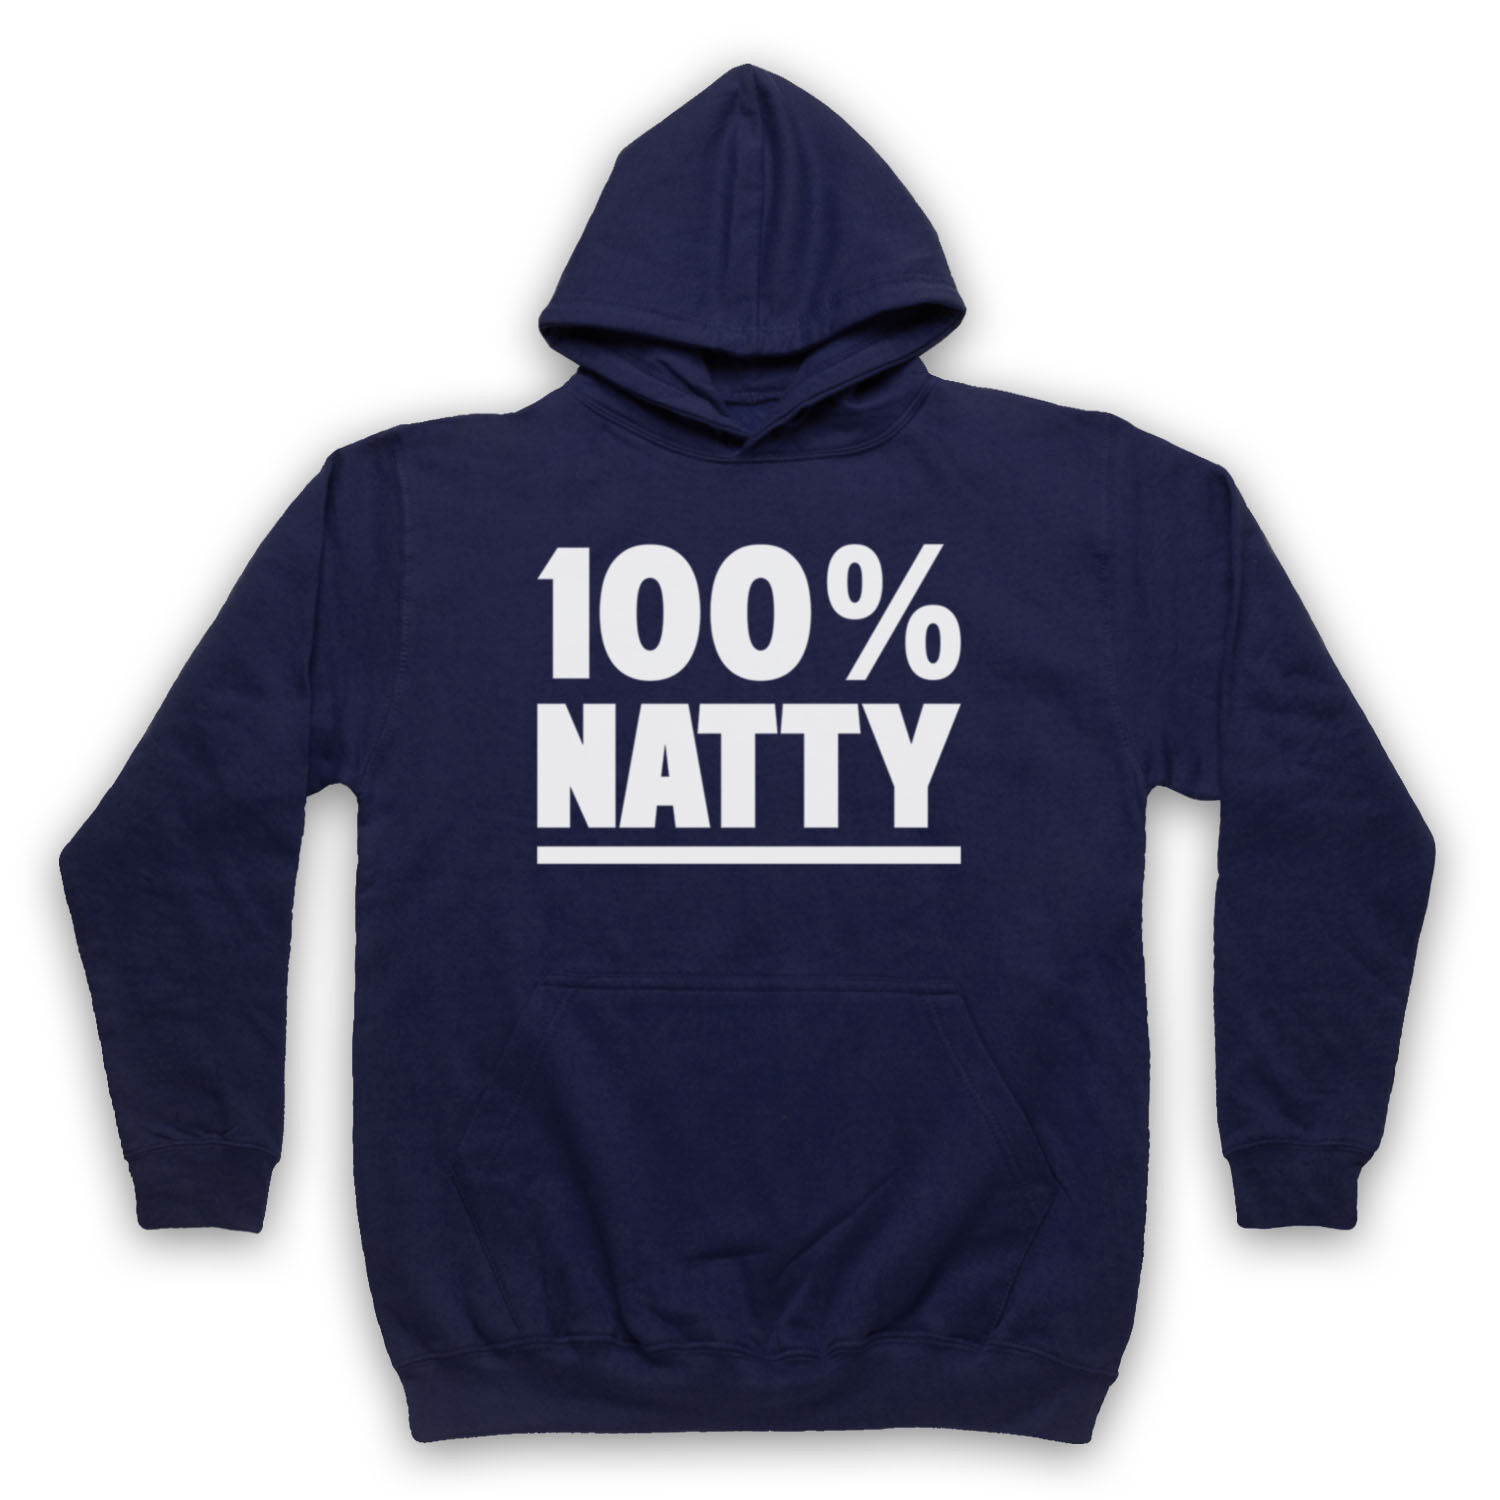 100% NATTY GYM SLOGAN BODYBUILDING WORKOUT WORKOUT WORKOUT MUSCLES ADULTS KIDS HOODIE c06d0b